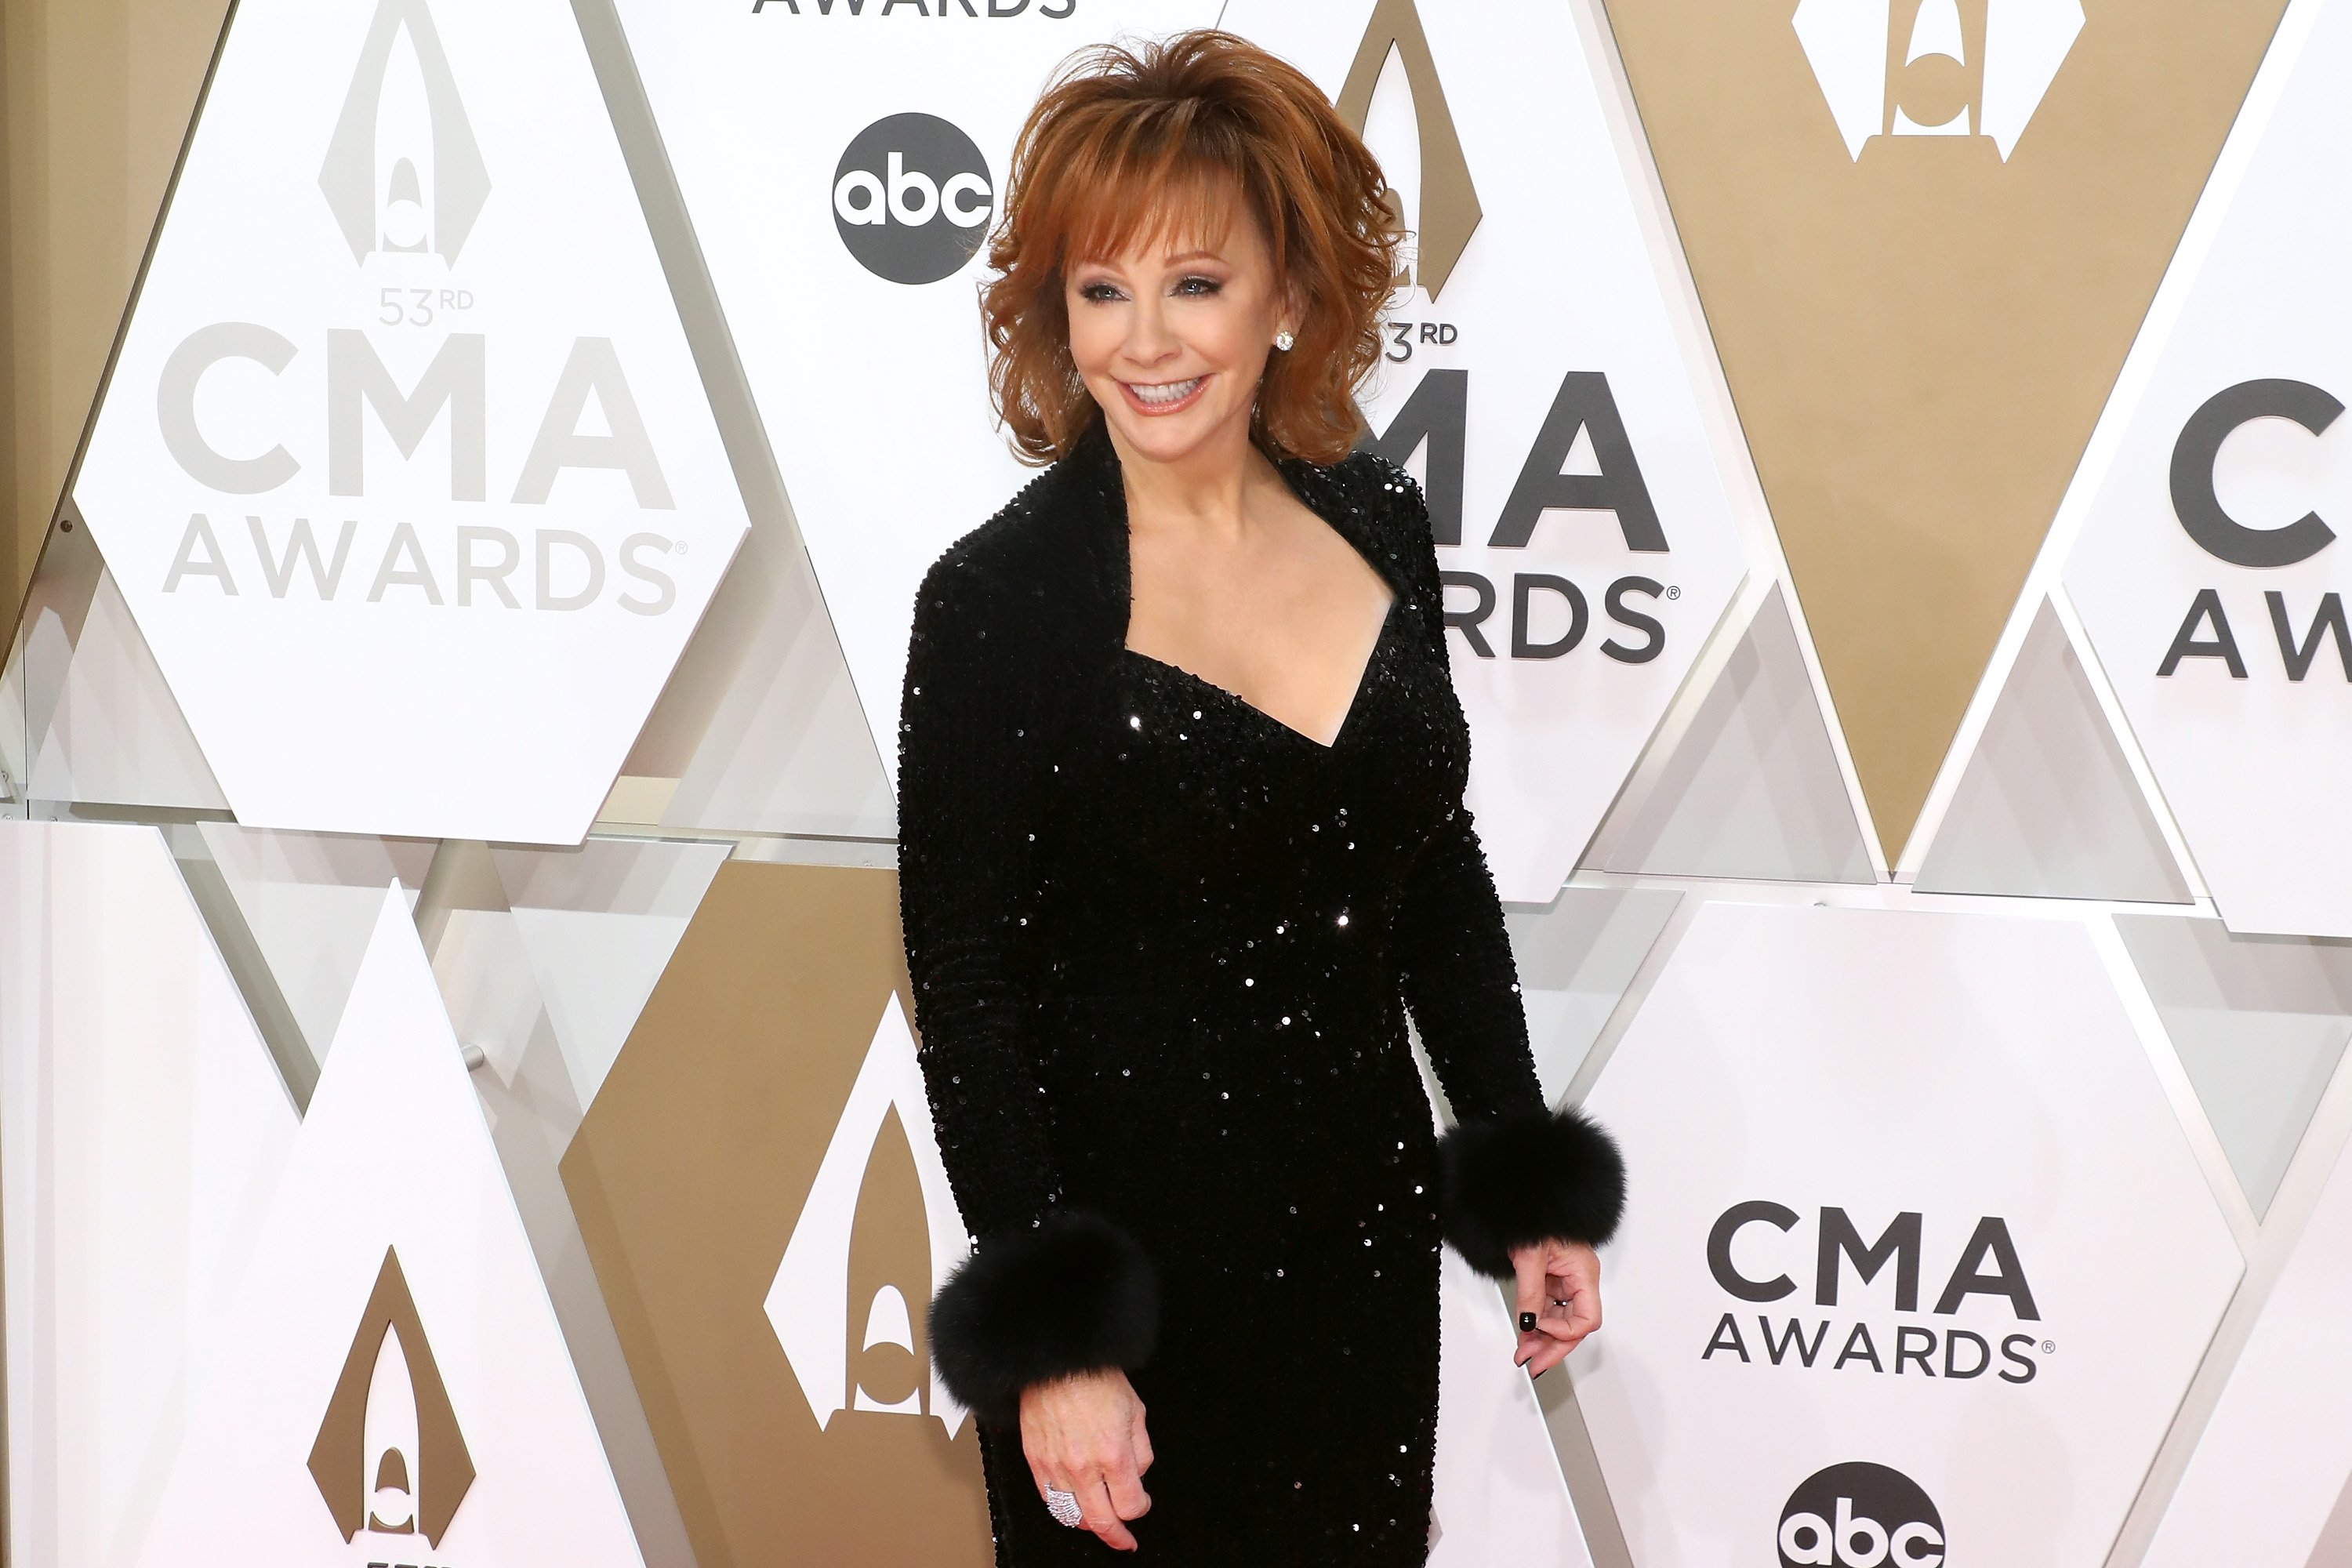 Reba McEntire attends the 53nd annual CMA Awards at Bridgestone Arena on November 13, 2019 in Nashville, Tennessee | Photo: Getty Images